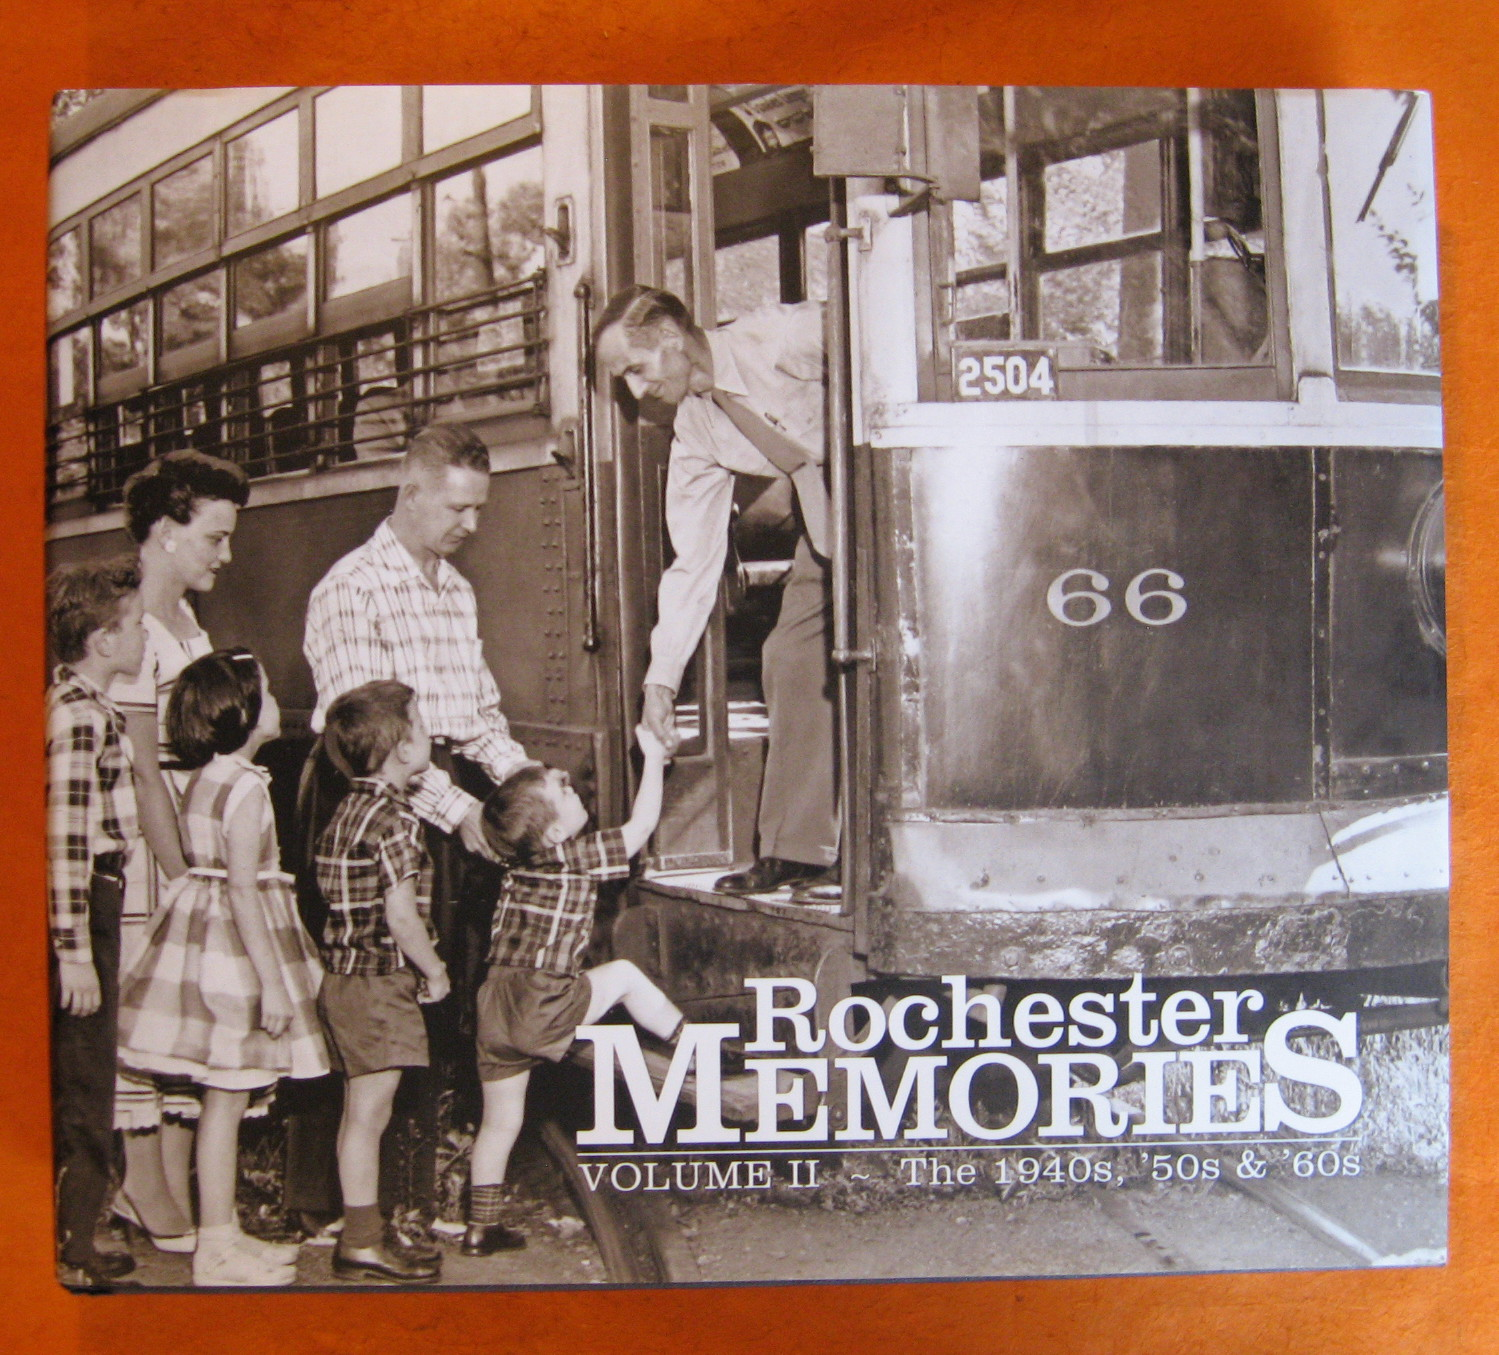 Rochester Memories Volume II:  The 1940s, '50s & '60s